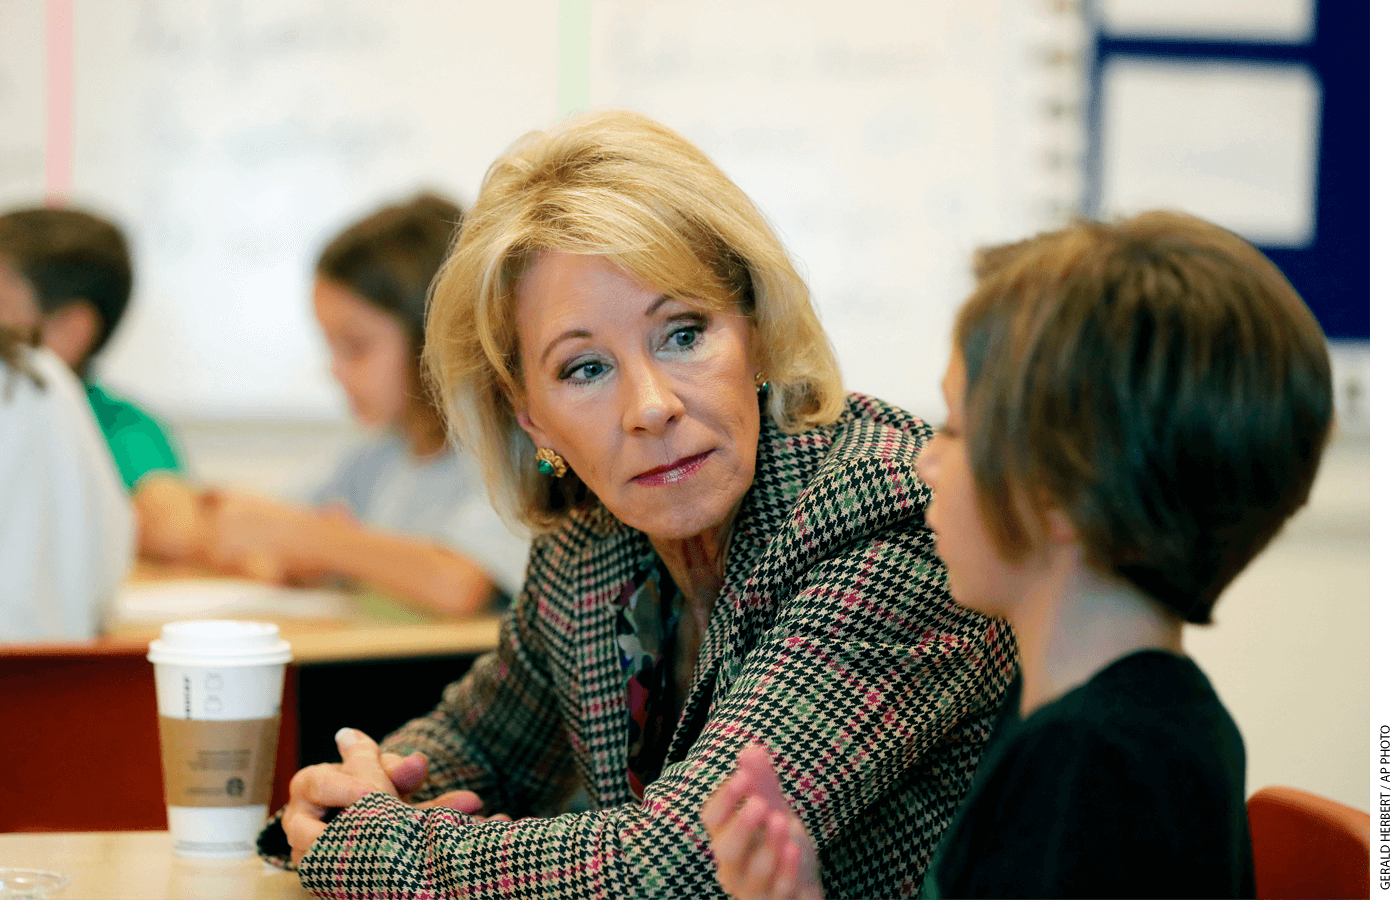 Education Secretary Betsy DeVos visits a classroom at the Edward Hynes Charter School in New Orleans, Friday, Oct. 5, 2018.